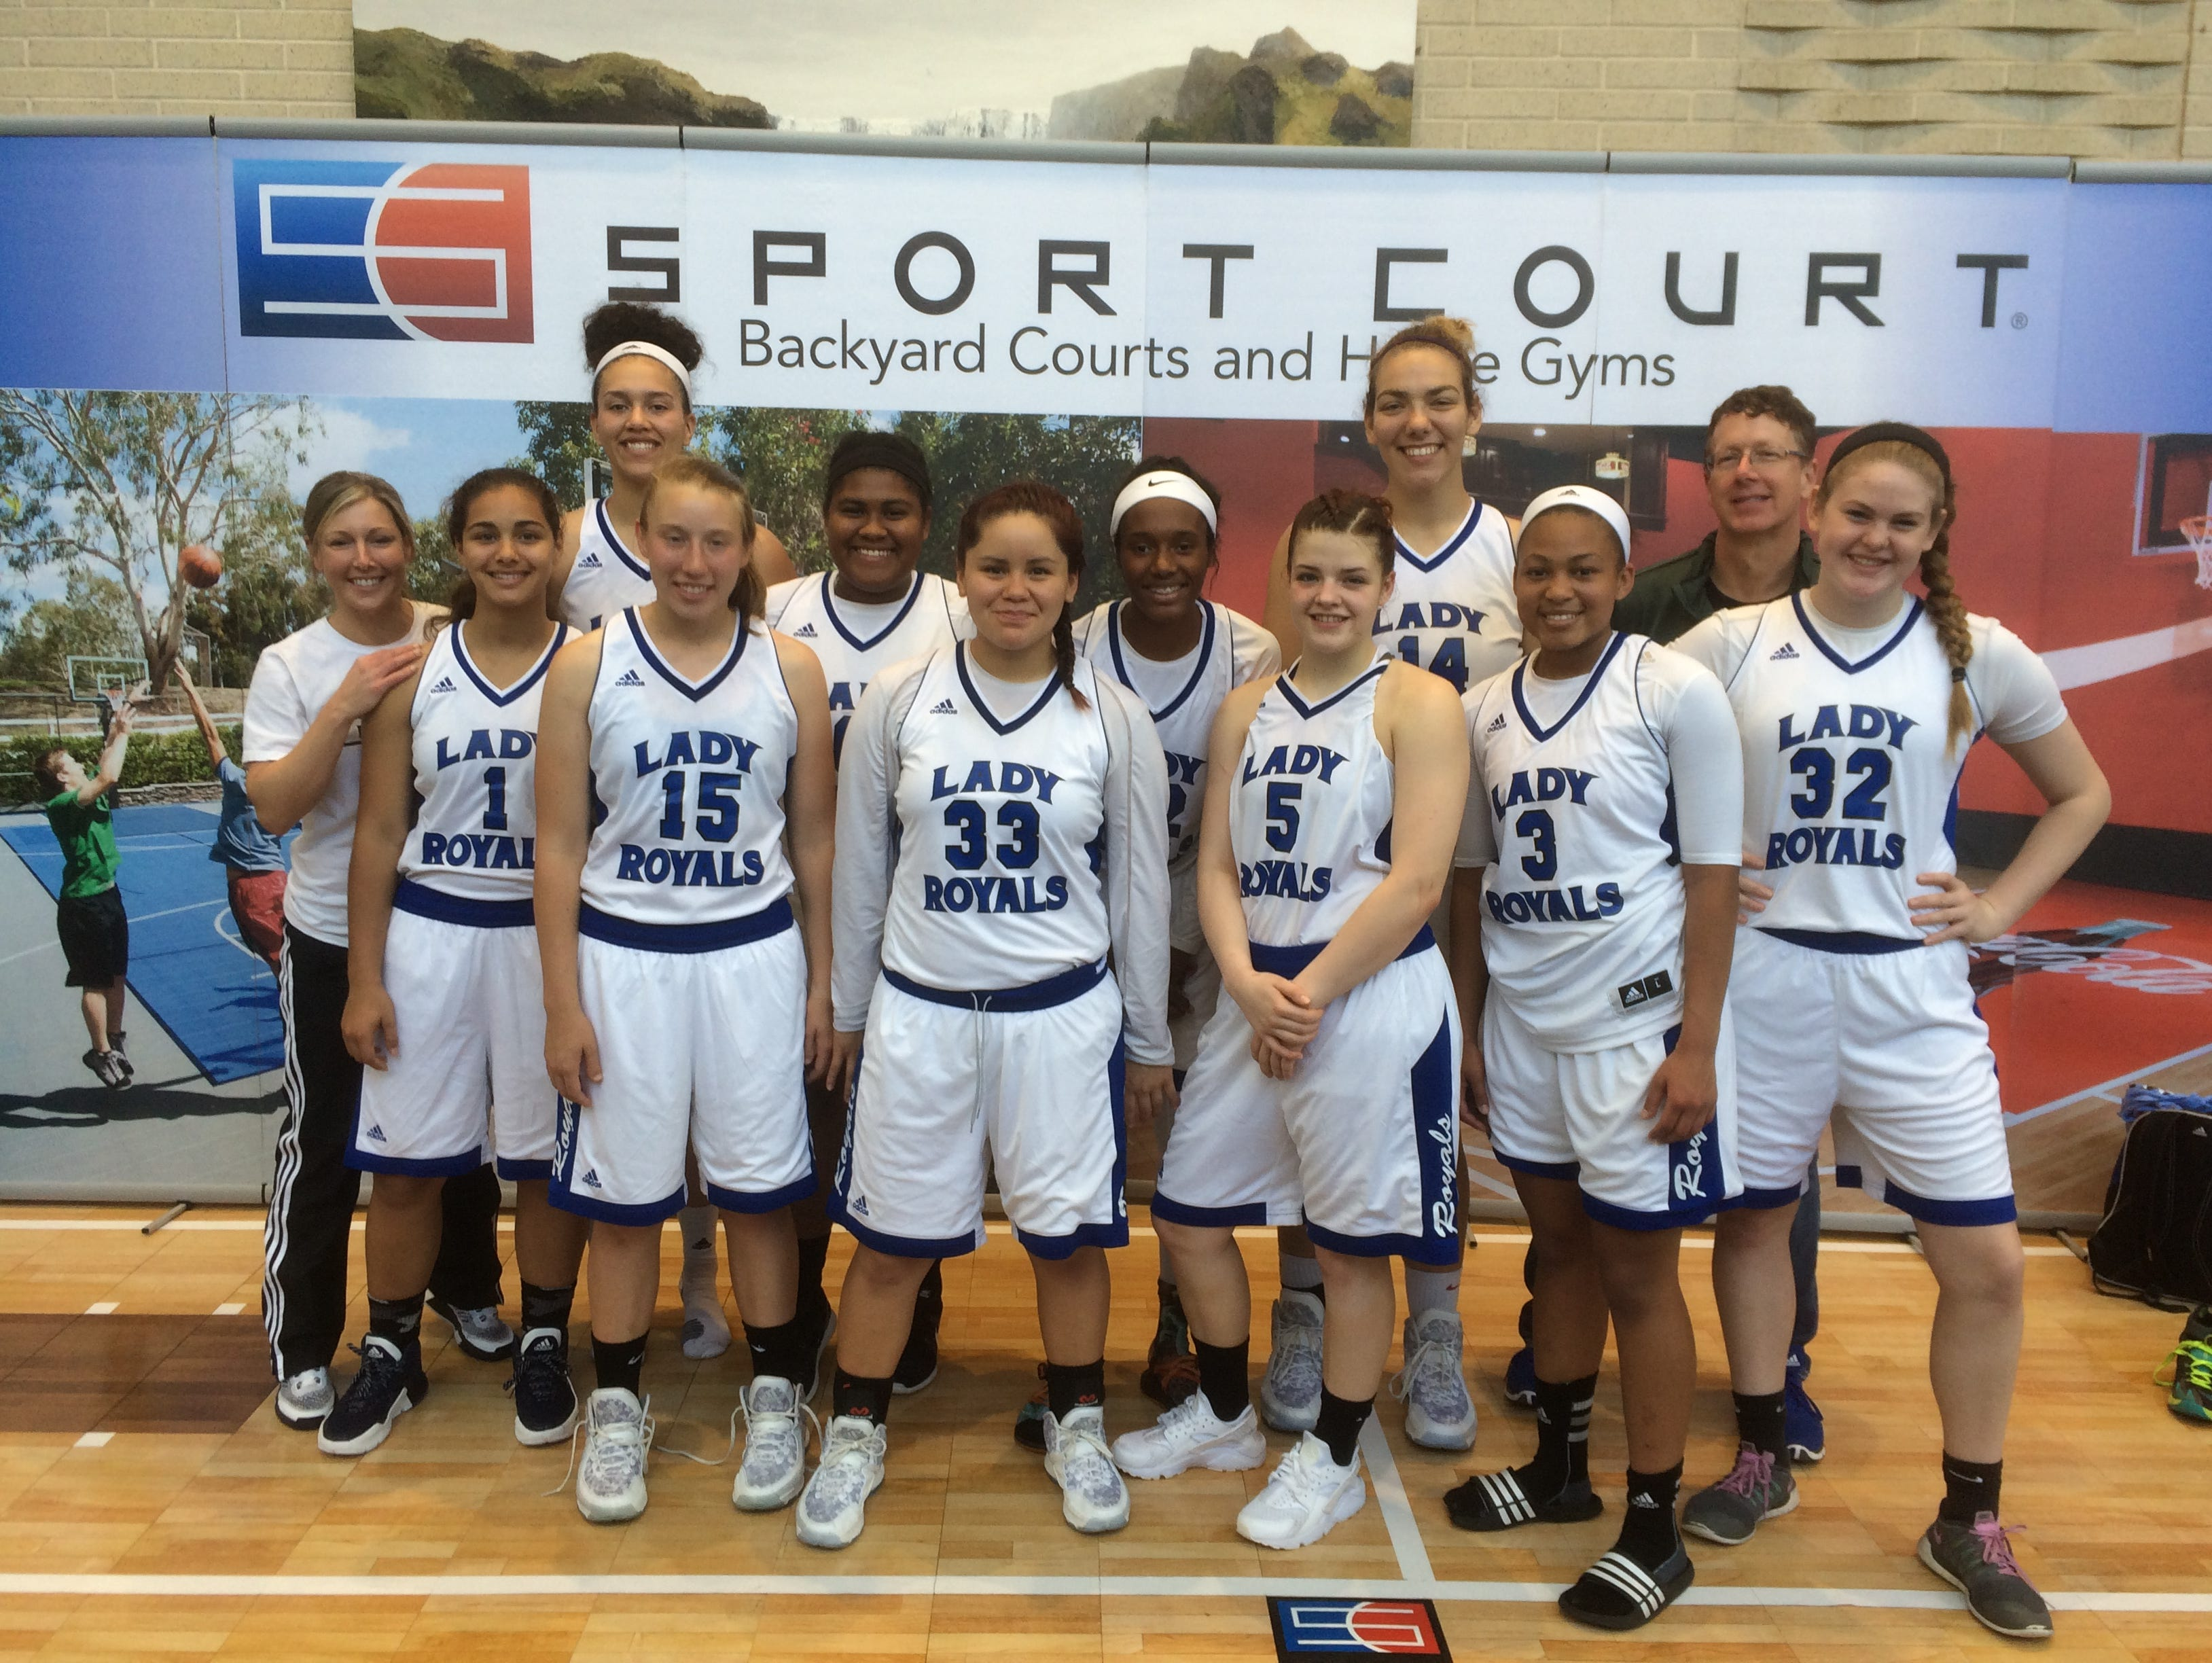 The WNC Lady Royals basketball team won the Deep South Showcase's 17 and under age division last weekend in Raleigh.